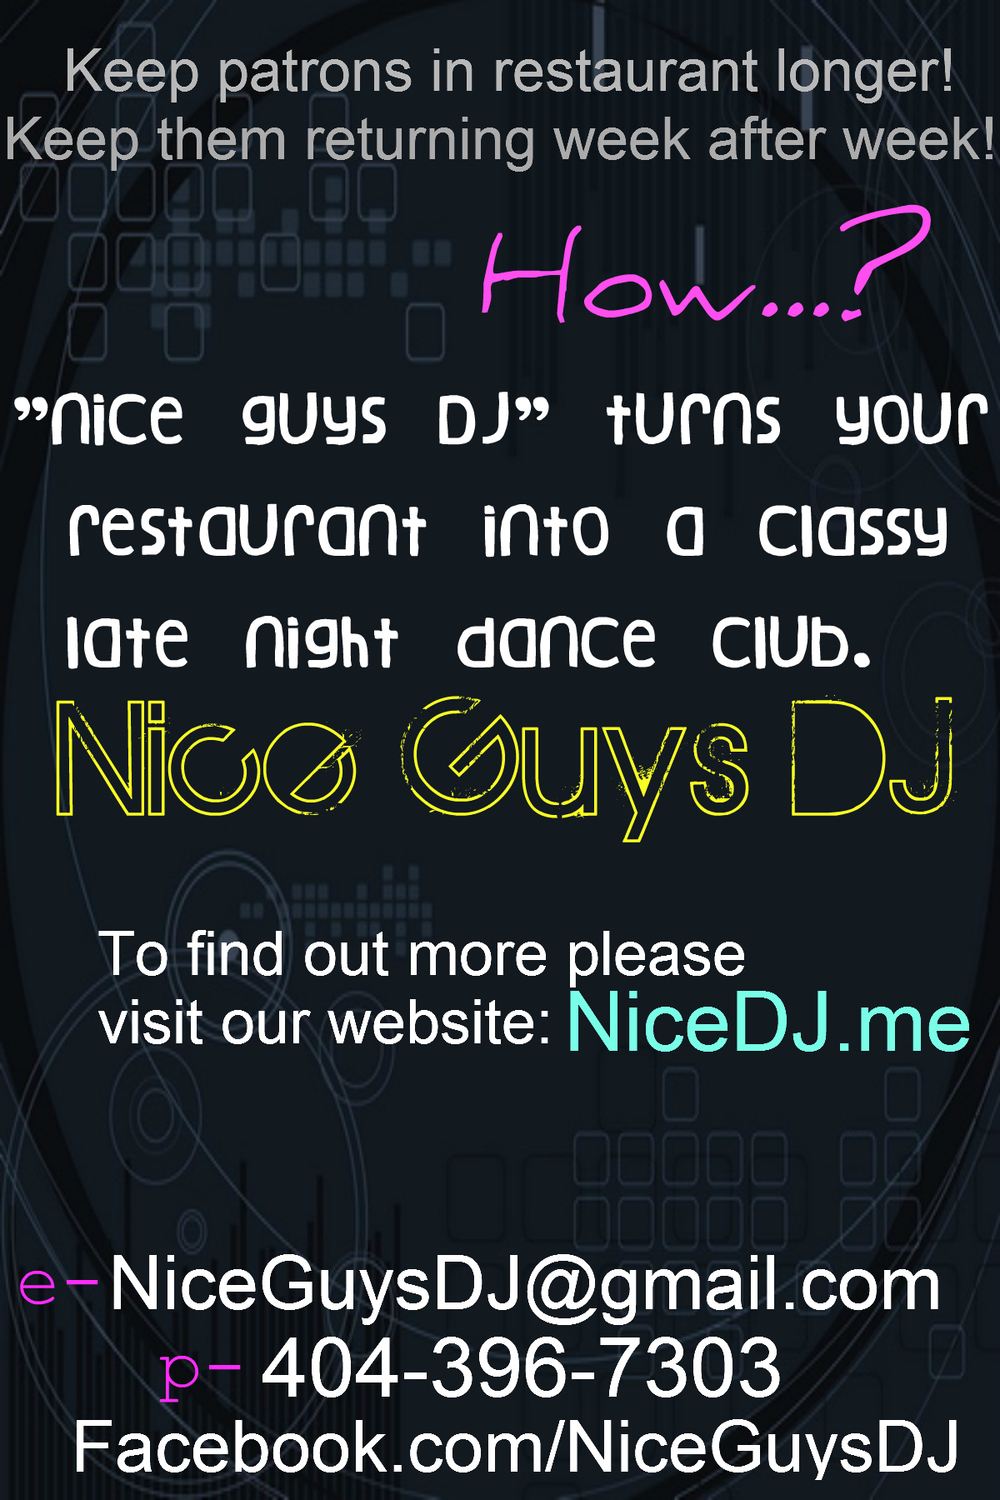 Nice Guys DJ turns your restaurant into a classy late night dance club